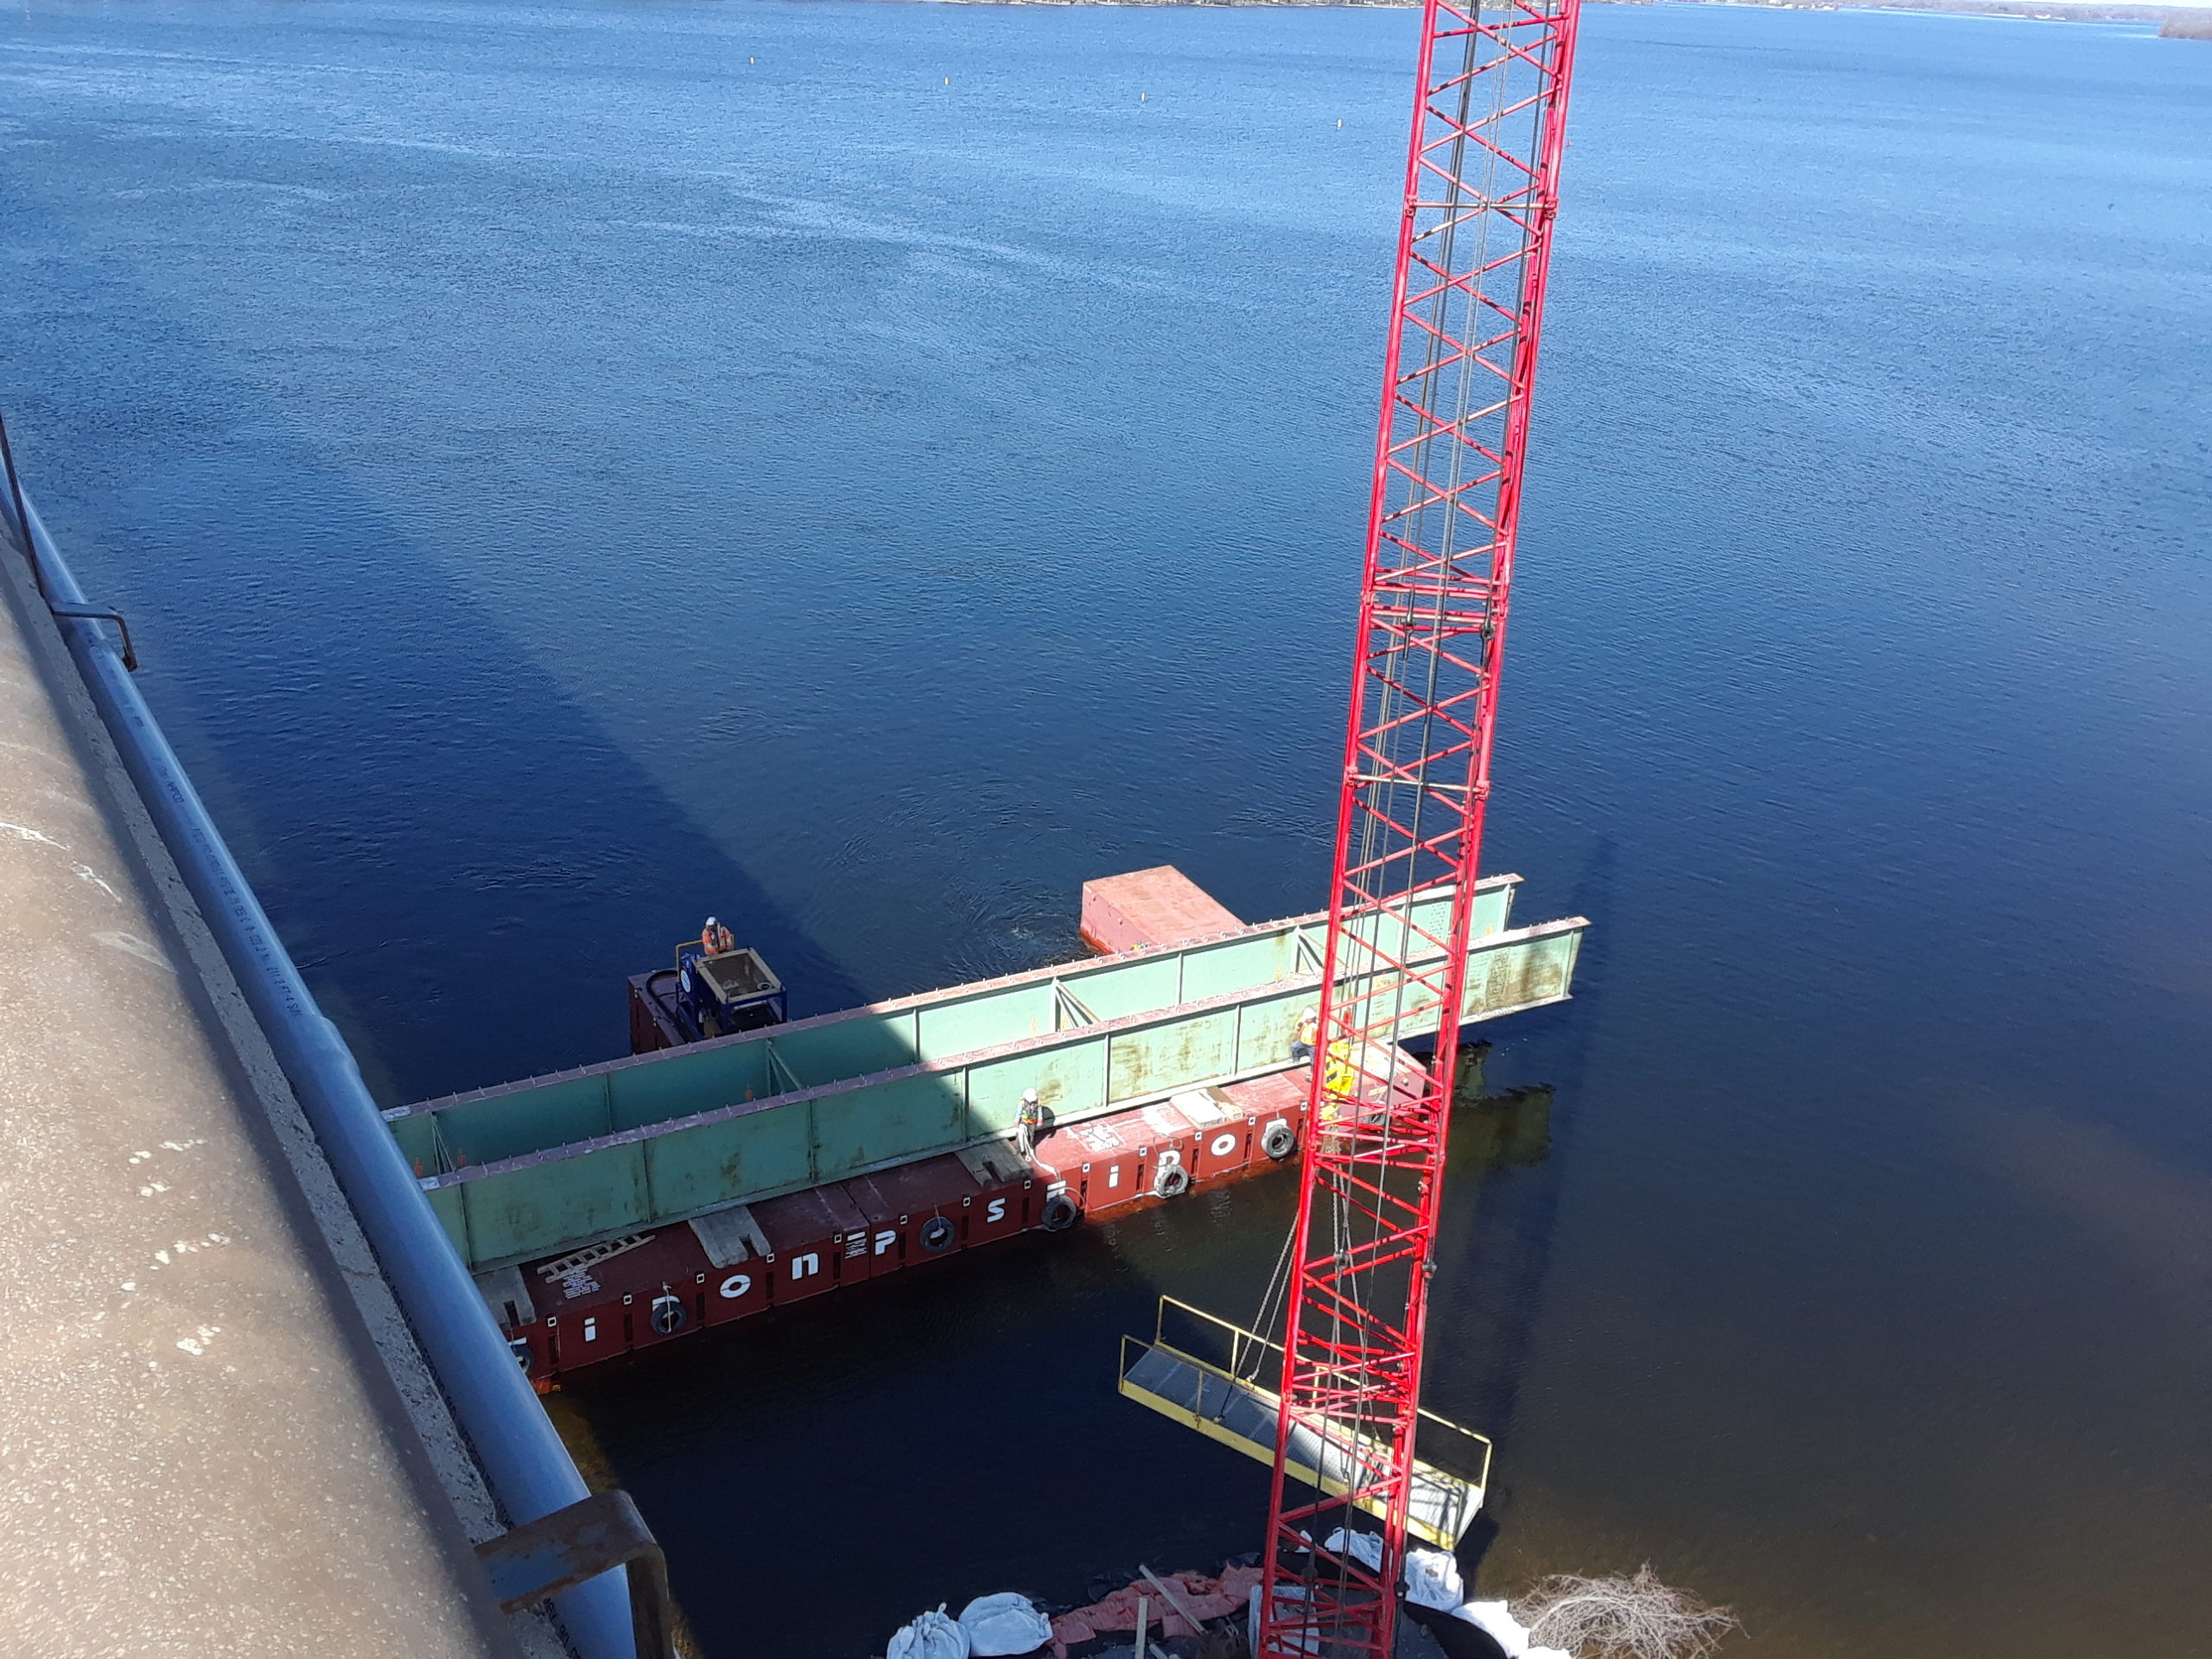 Second section of removed girder being brought to shore / crane waiting with walkway for barge access